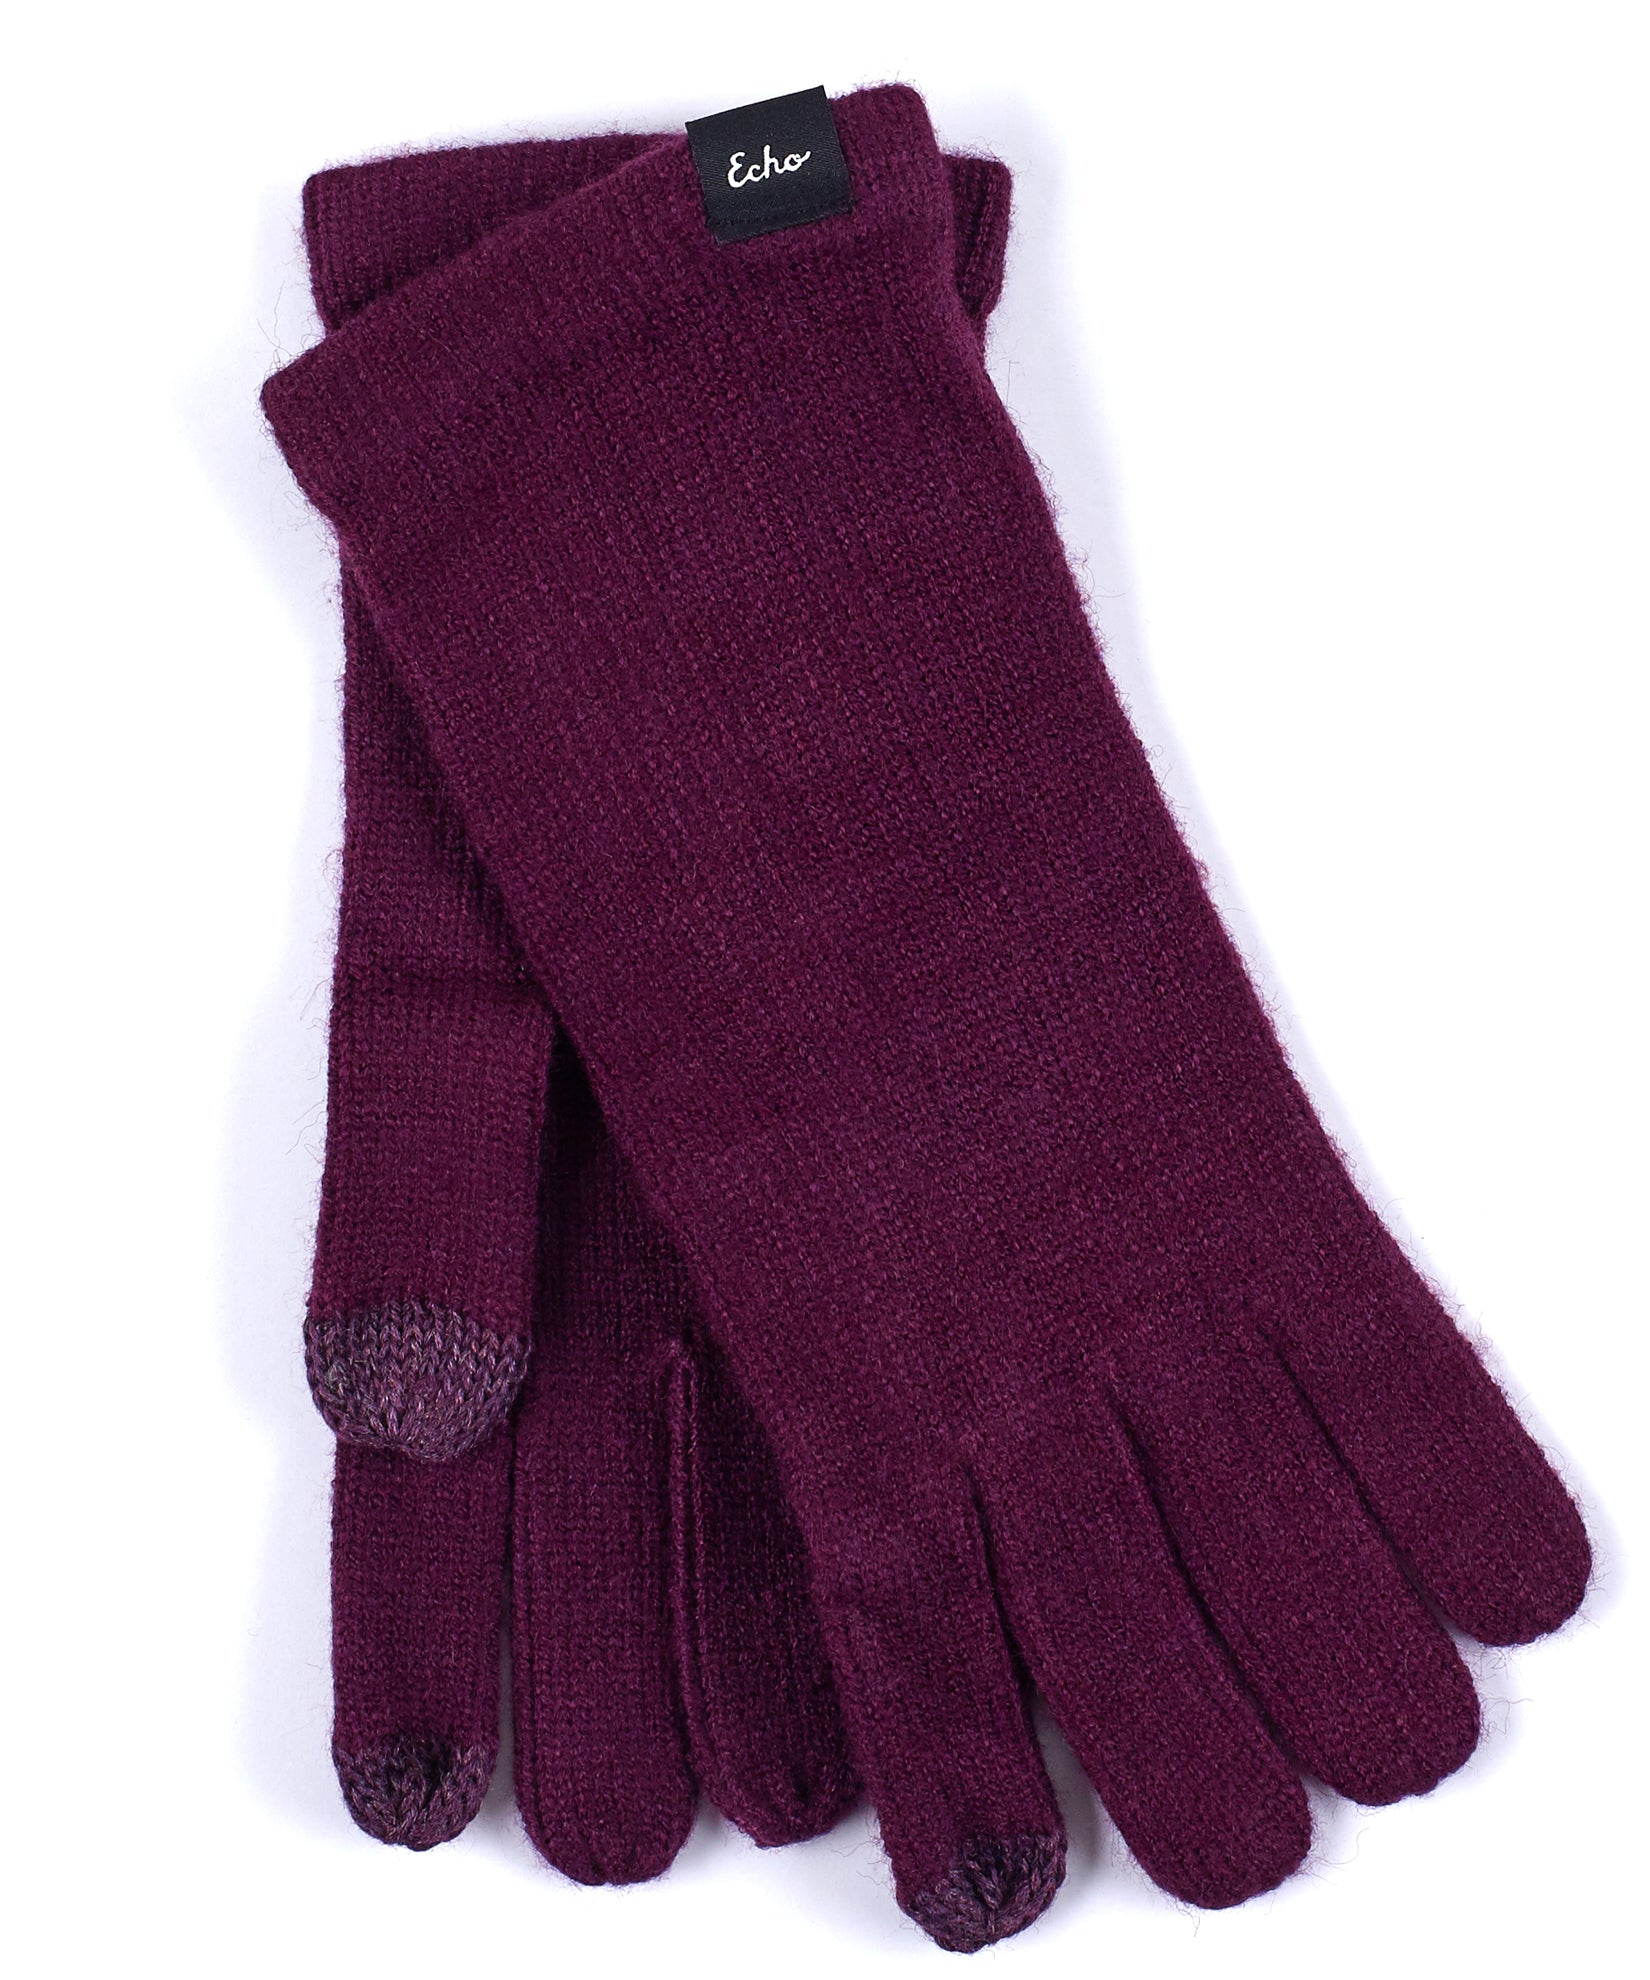 Pickled Beet - Echo Touch Glove